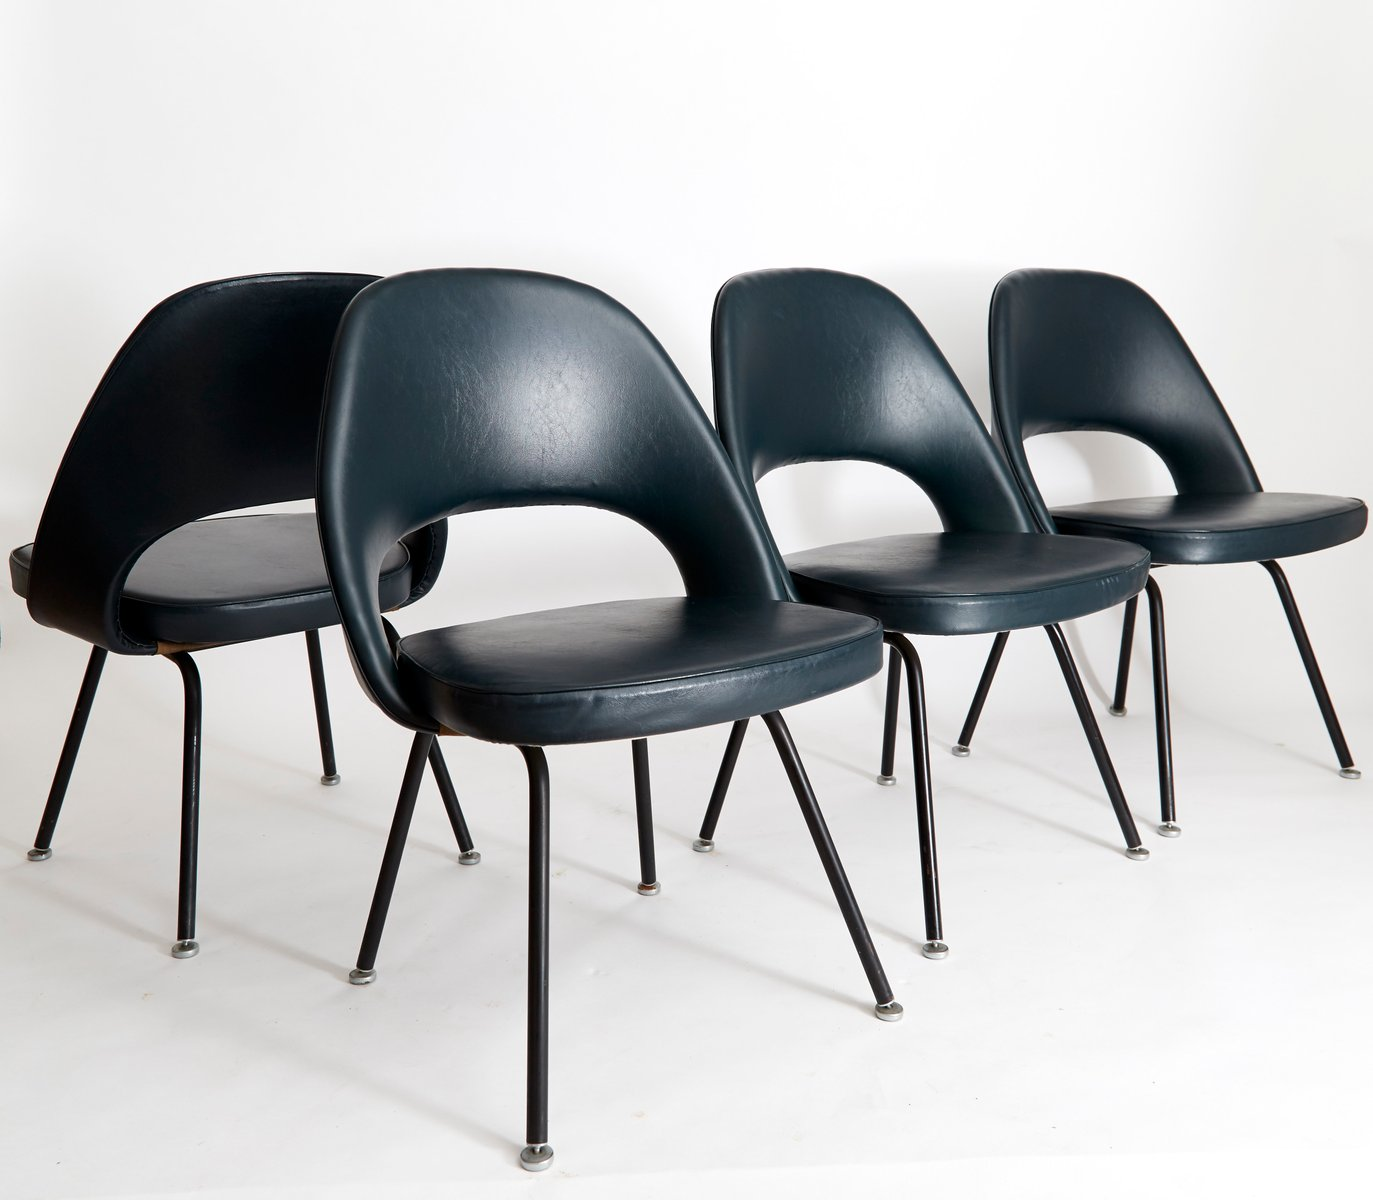 Vintage executive chair 72 by eero saarinen for knoll international set of 4 for sale at pamono - Knoll inc chairs ...